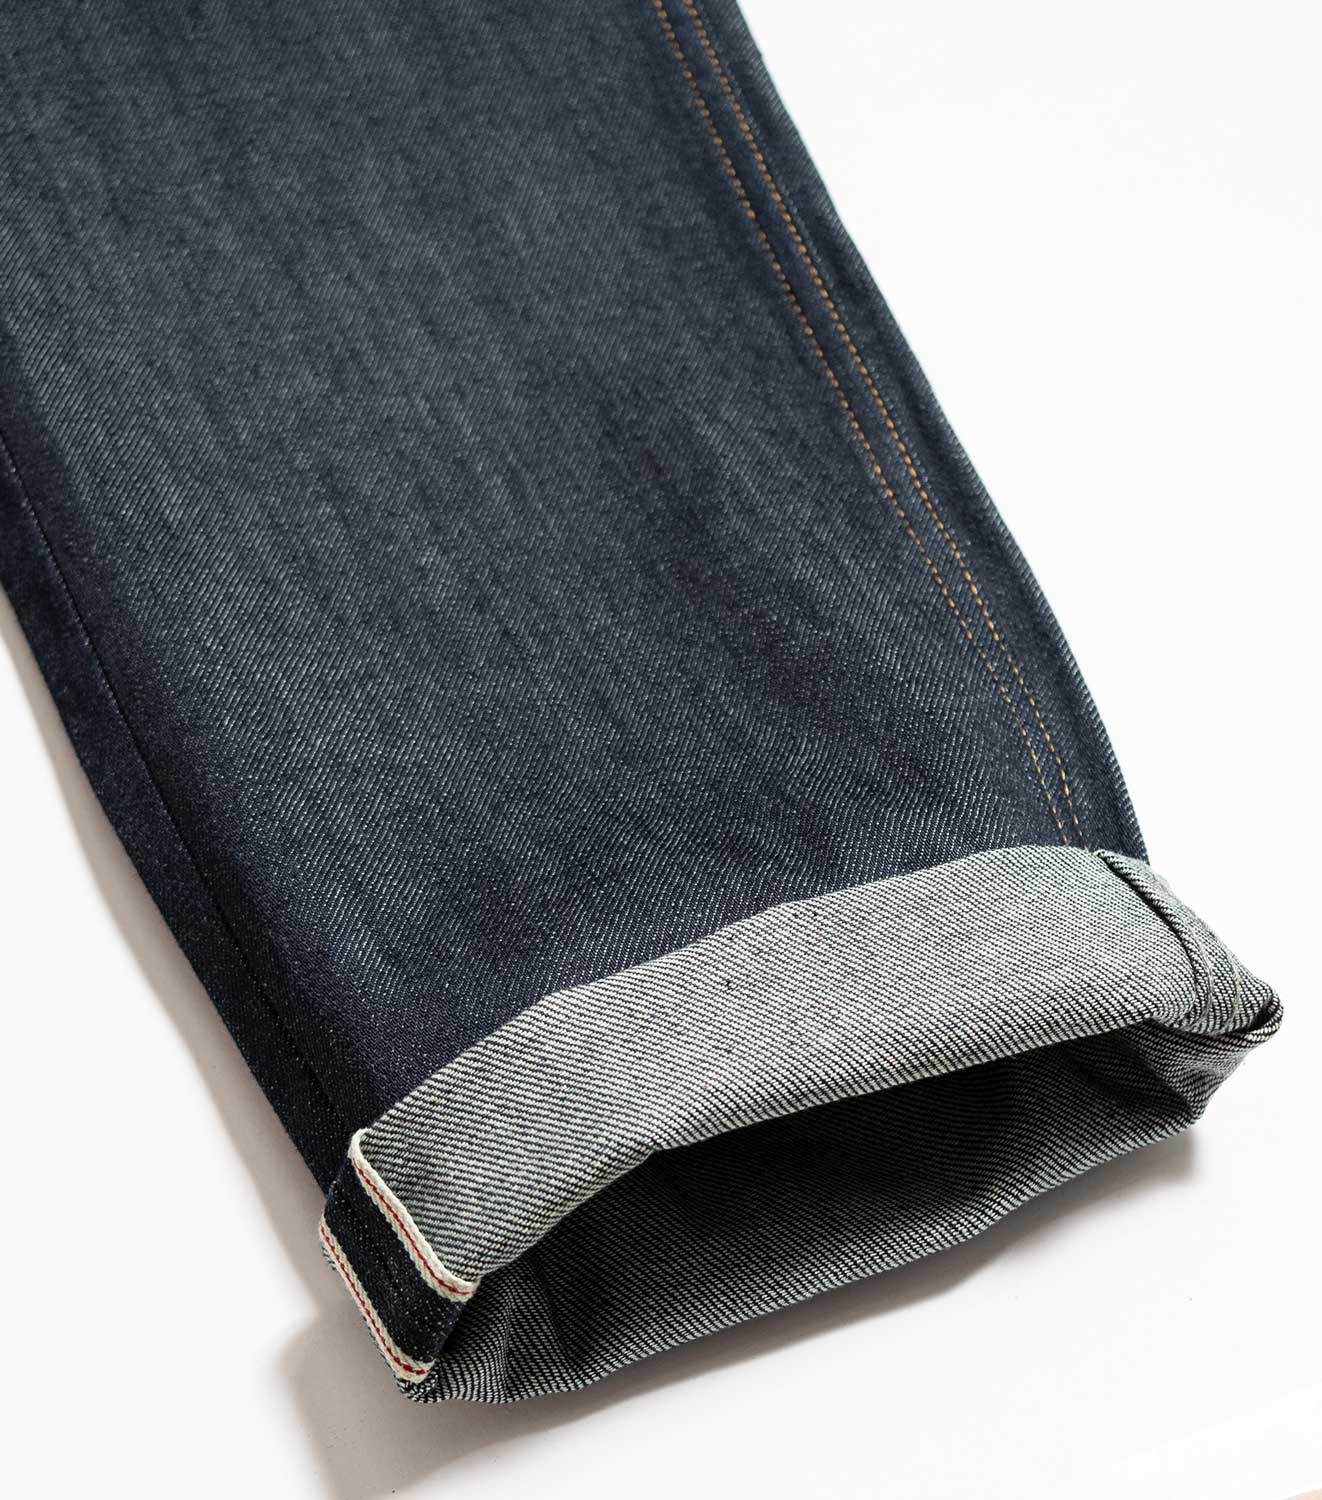 Wood Wood Wes Selvage Jeans - Raw